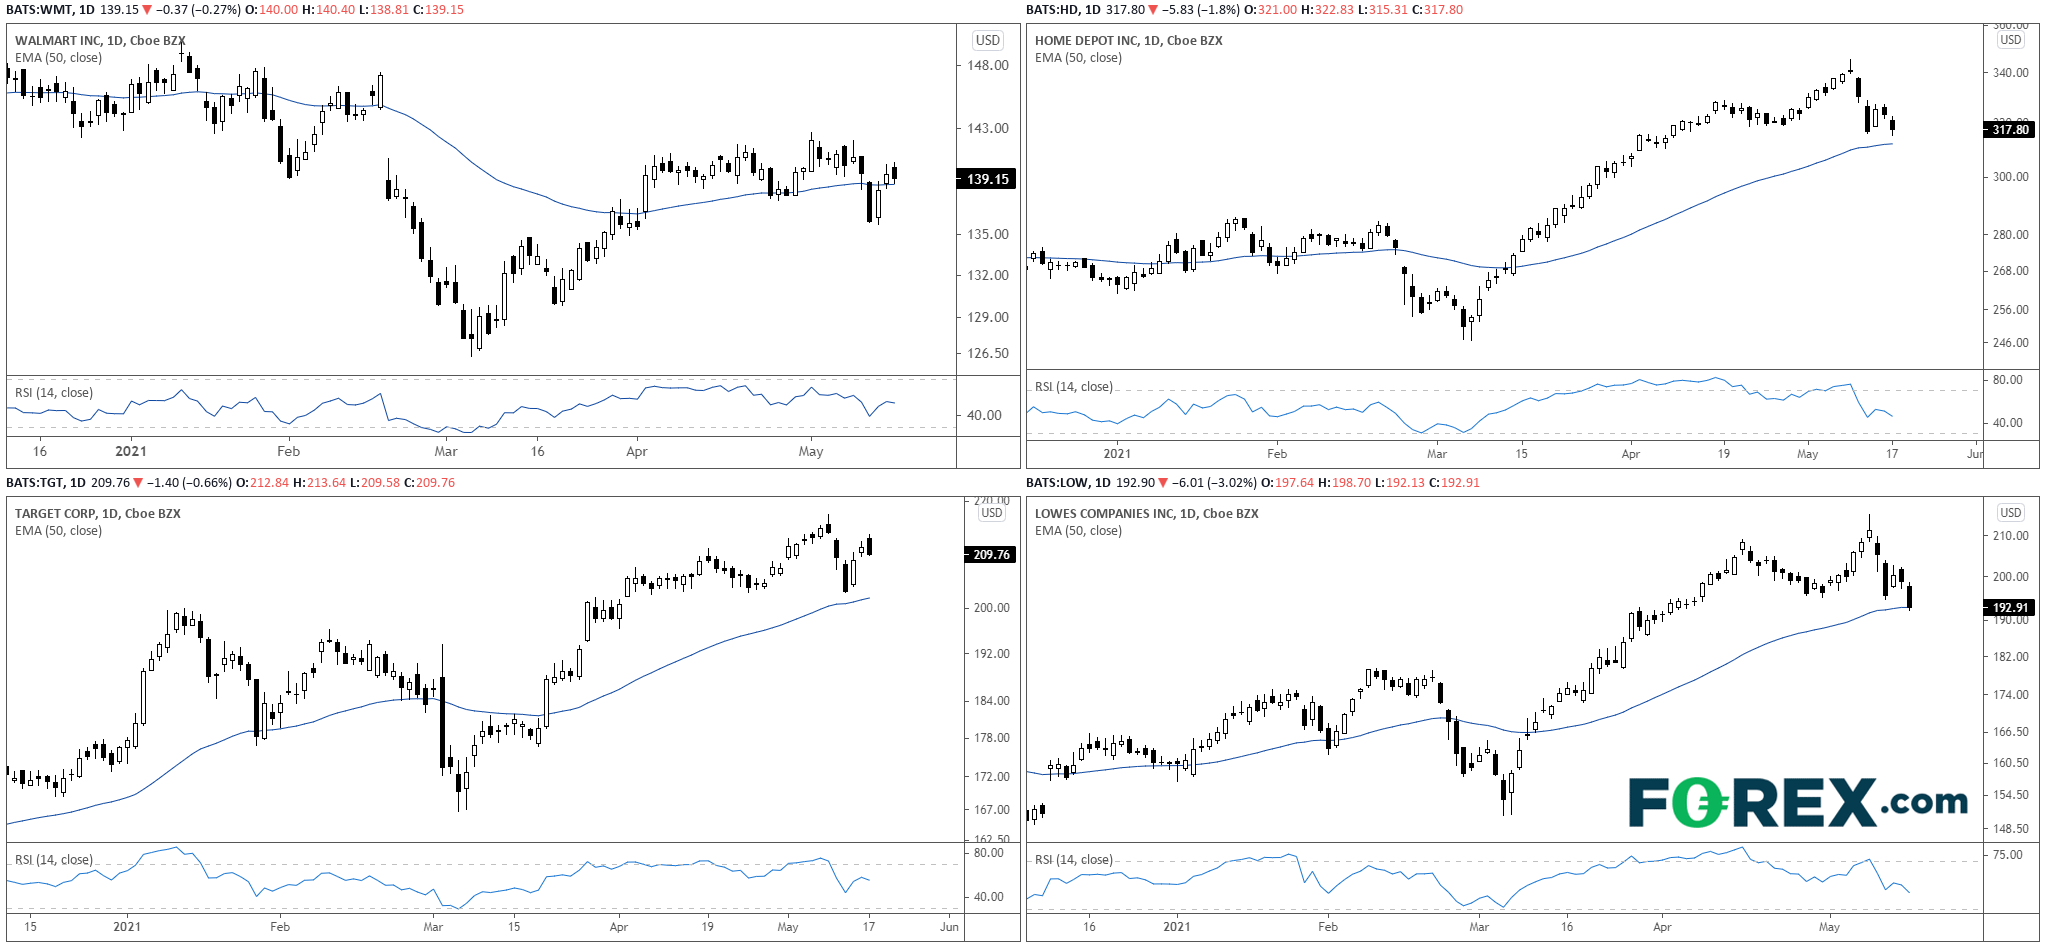 WMT:HD:TGT:LOW Daily Charts